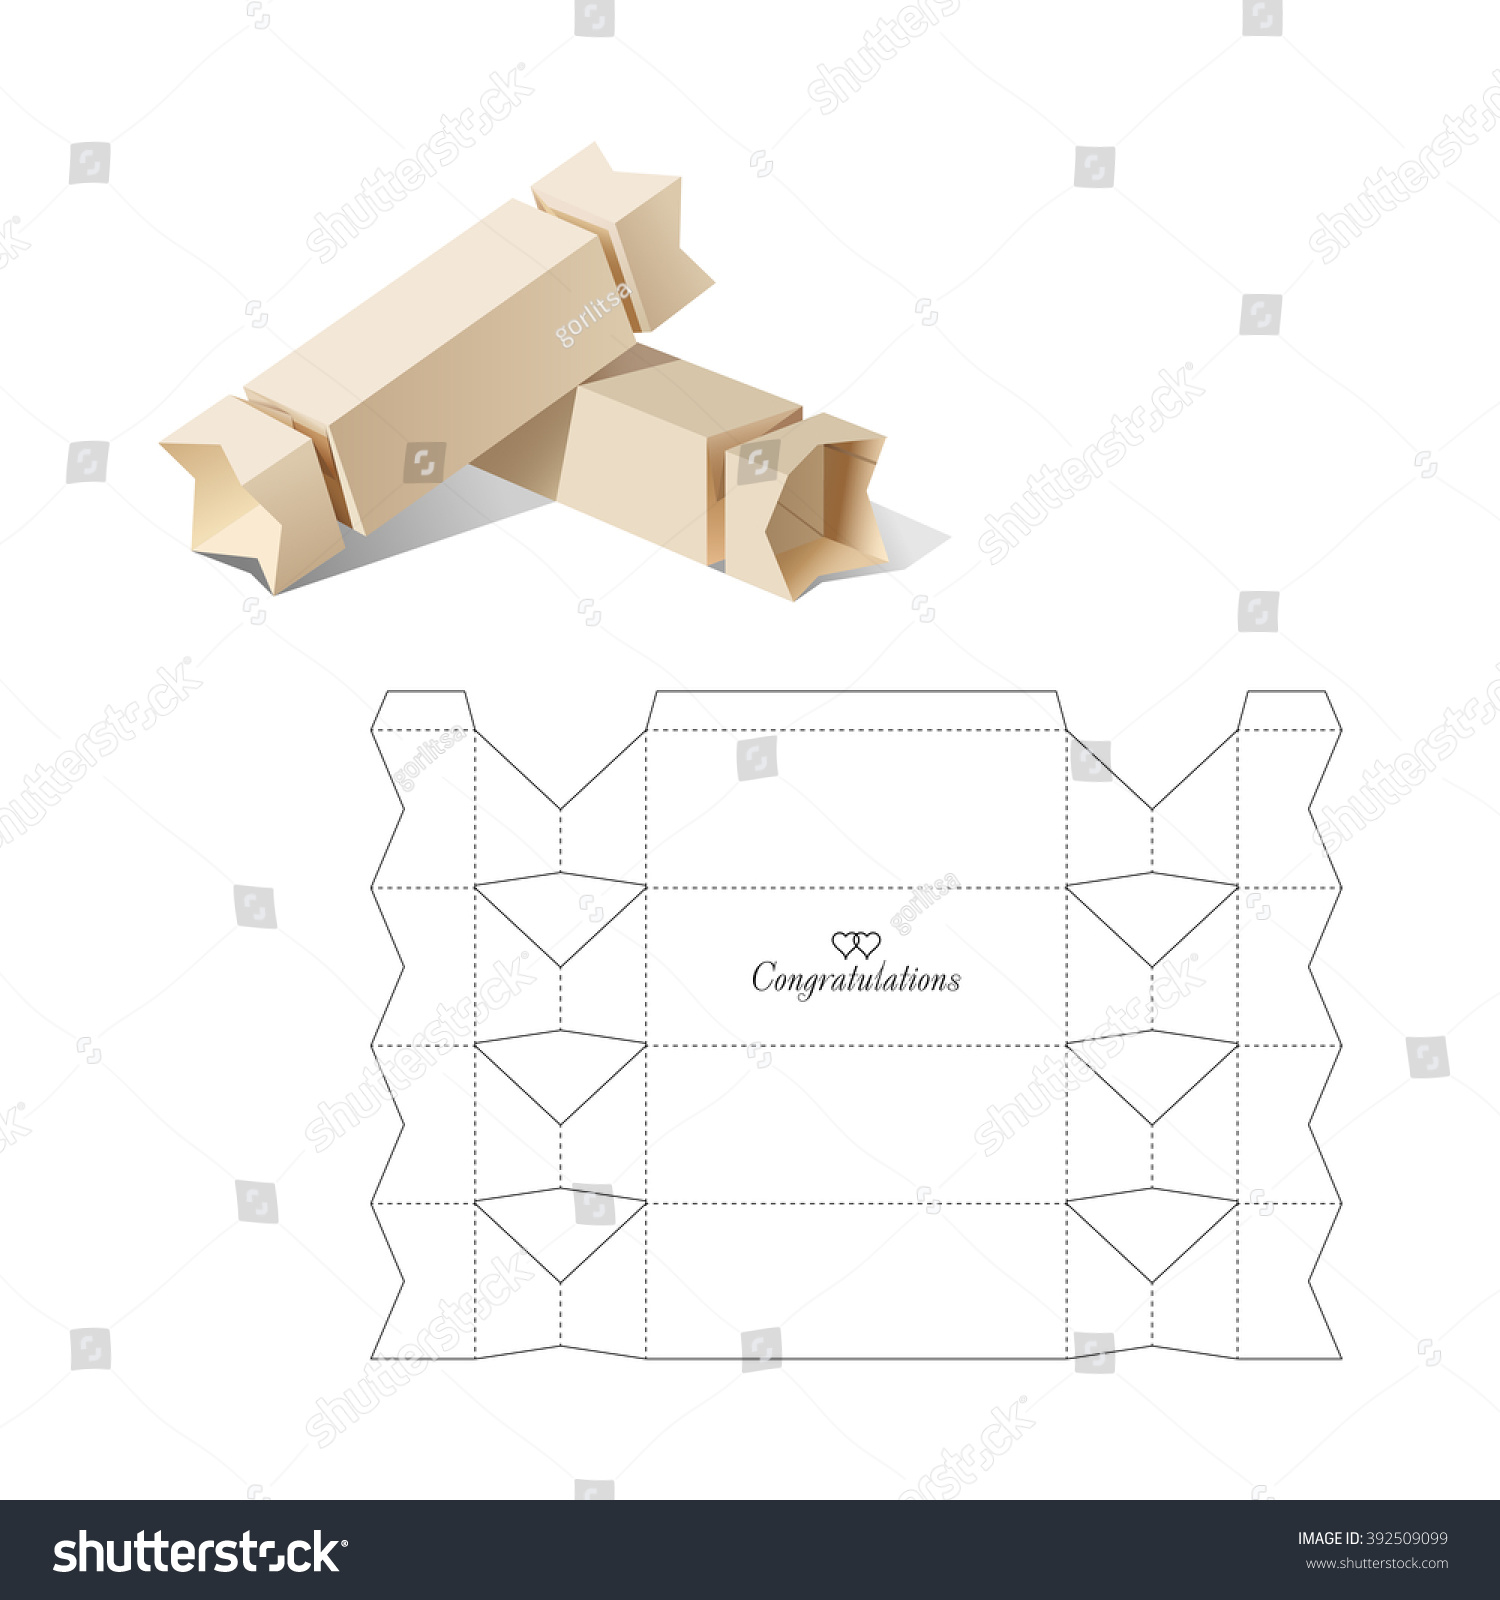 Candy box blueprint template stock vector 392509099 shutterstock candy box with blueprint template malvernweather Choice Image